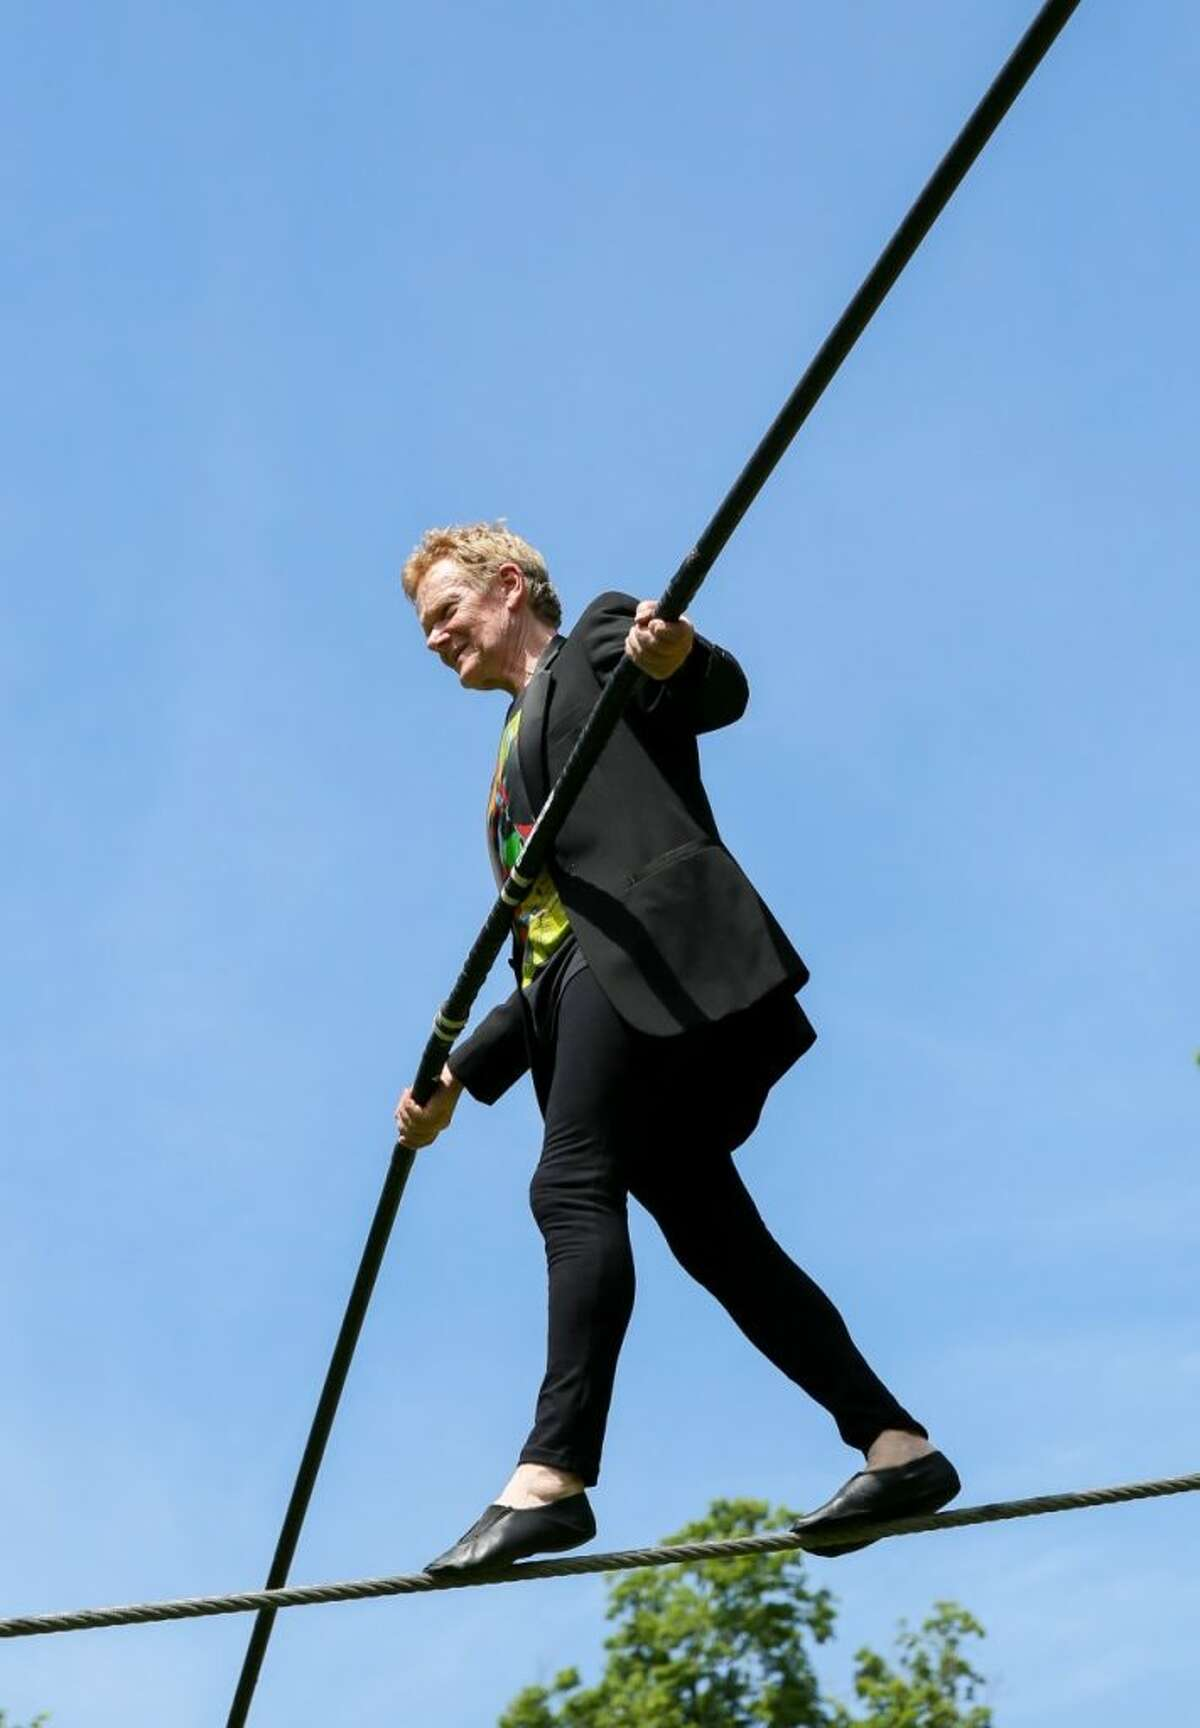 Philippe Petit on a hire wire attached to the roof of the Glass House. - Contributed photo